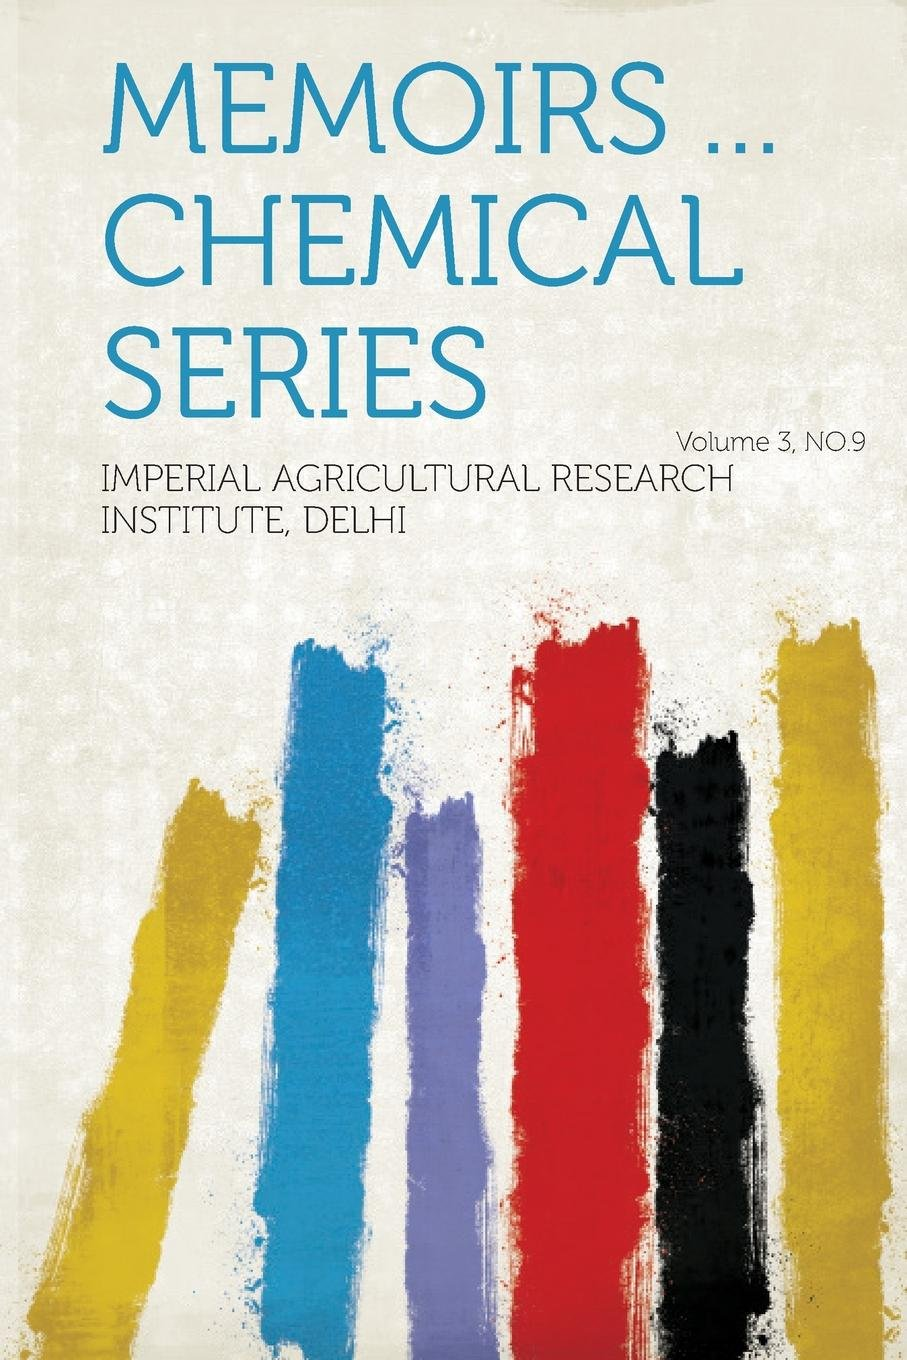 Read Online Memoirs ... Chemical Series Volume 3, No.9 PDF